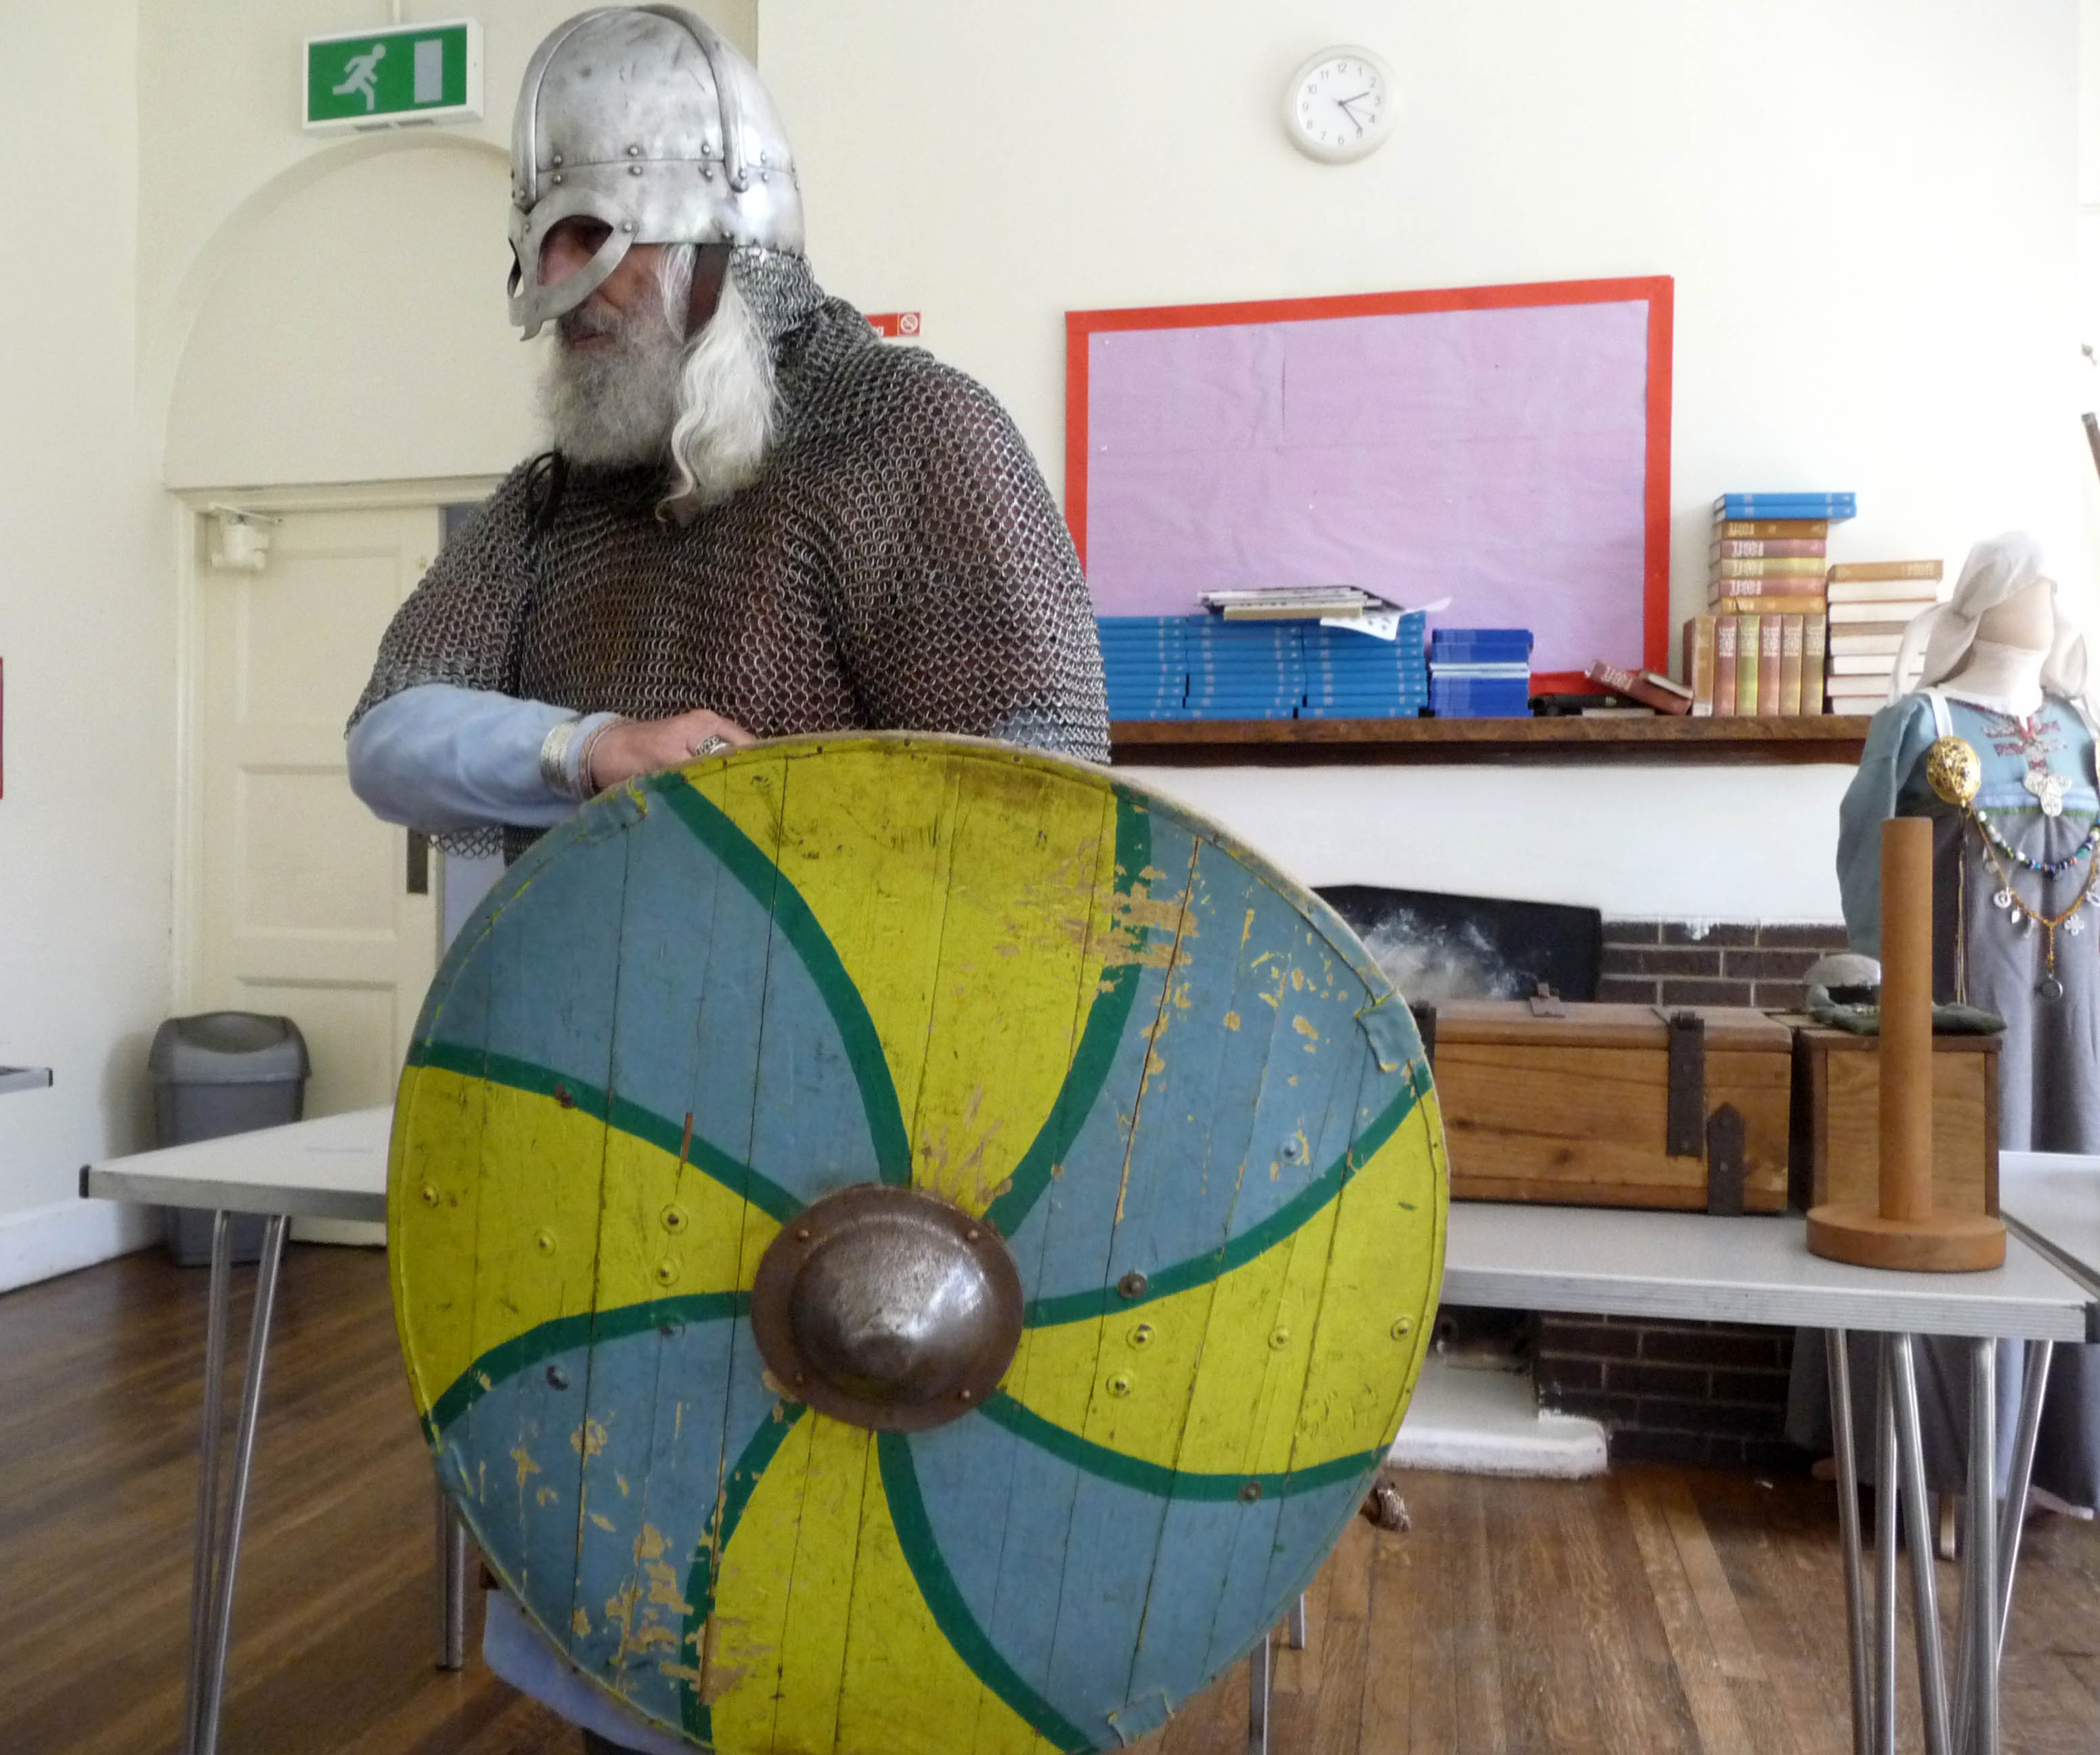 Snorri the Viking entered wearing chainmail and helmet and carrying a shield